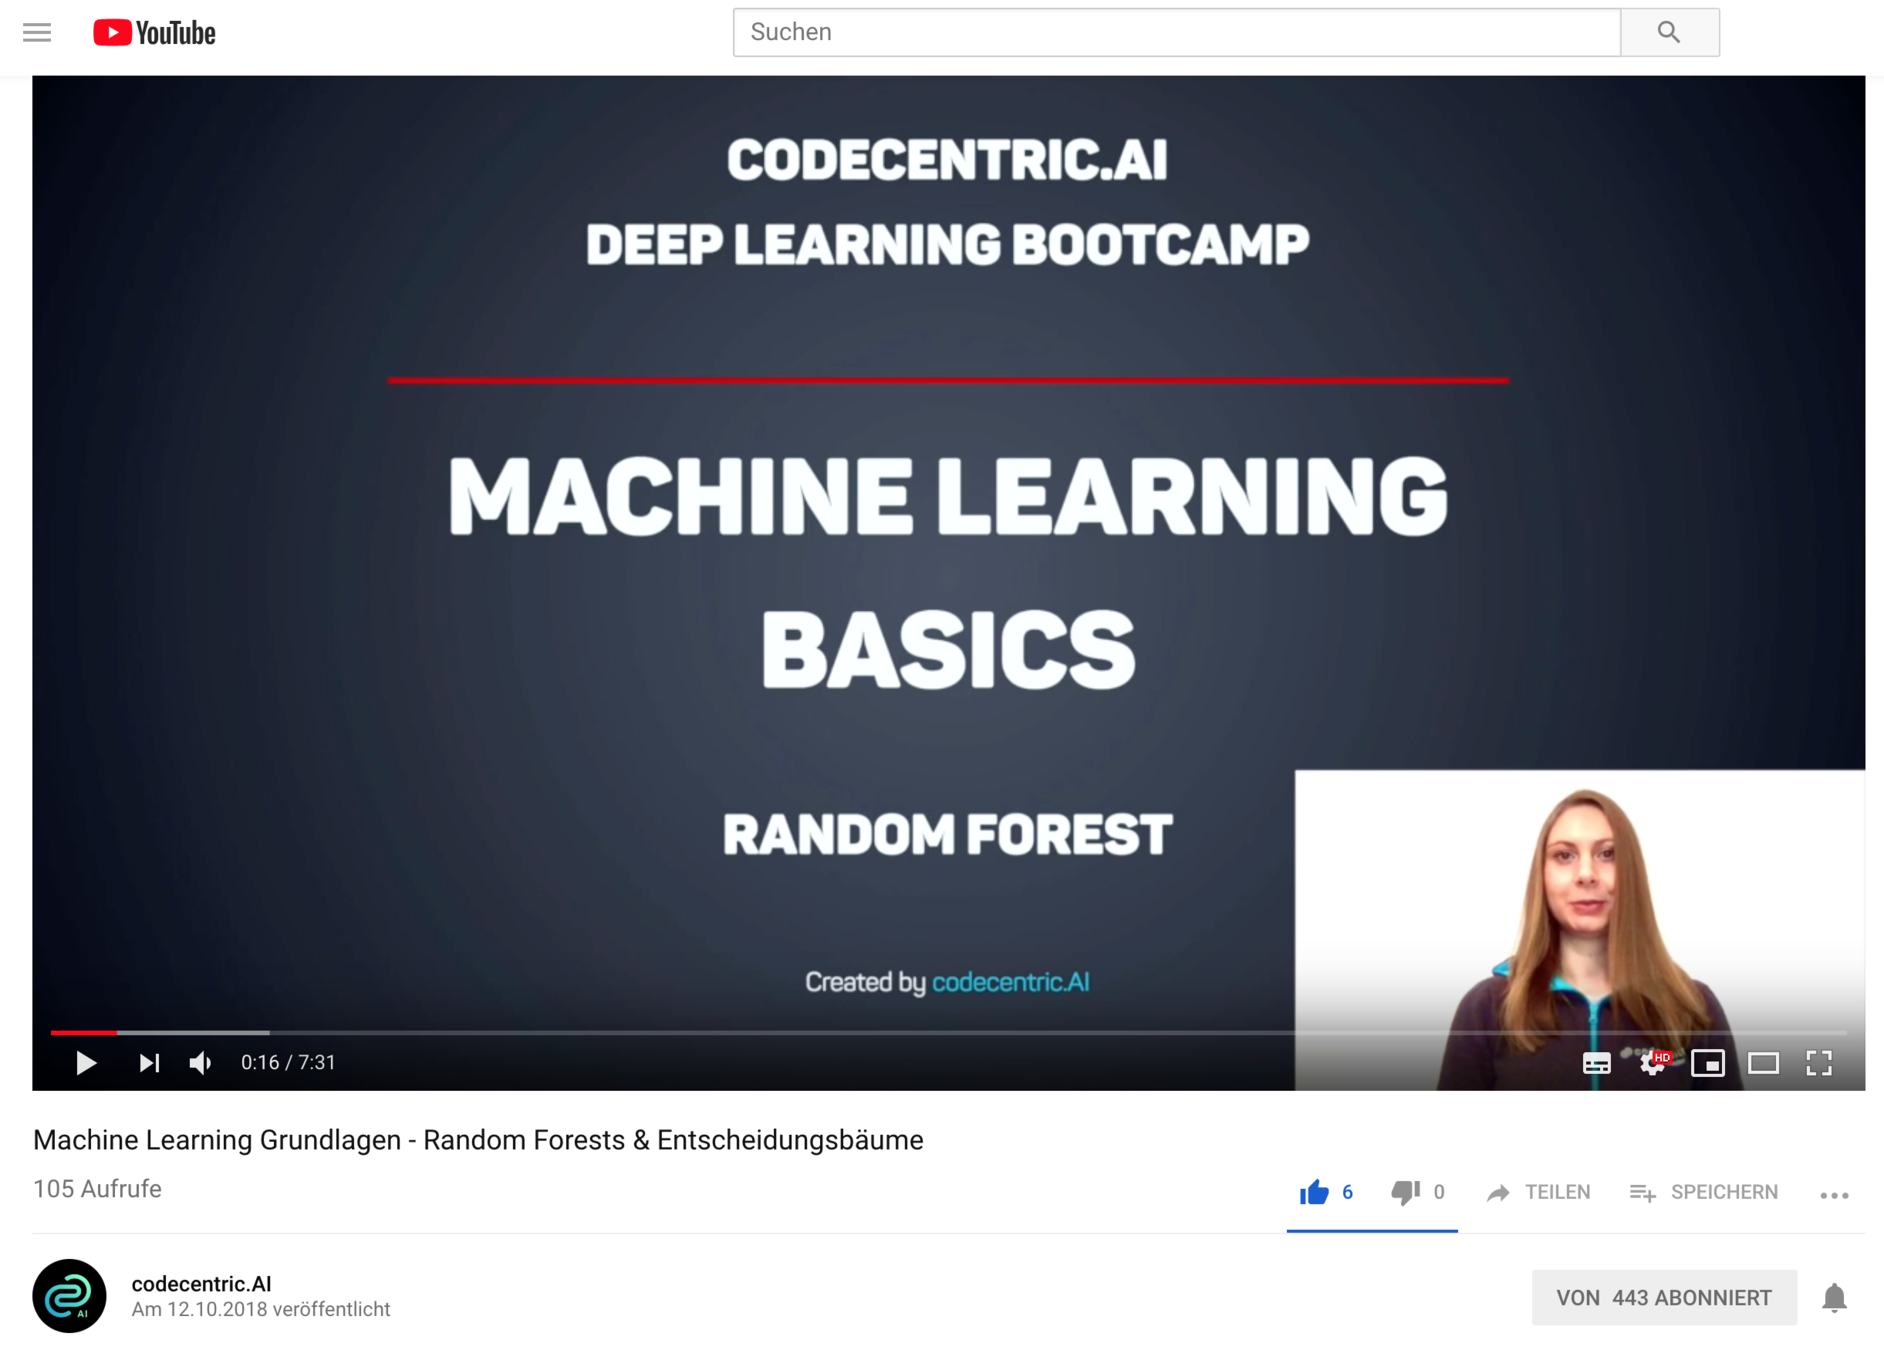 Machine Learning Basics - Gradient Boosting & XGBoost